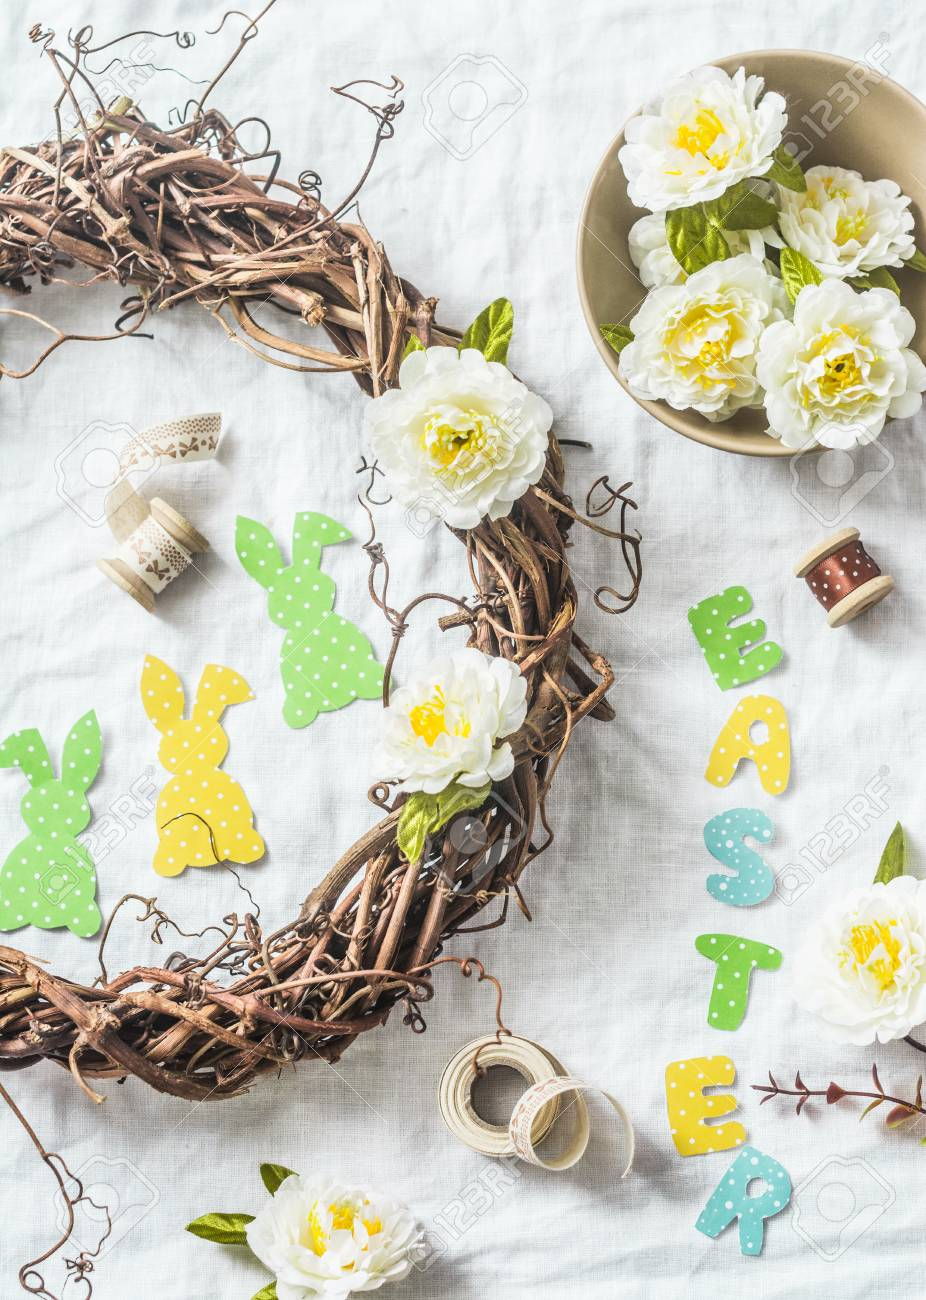 Making Homemade Easter Wreath Of Vines With Flowers Paper Rabbits